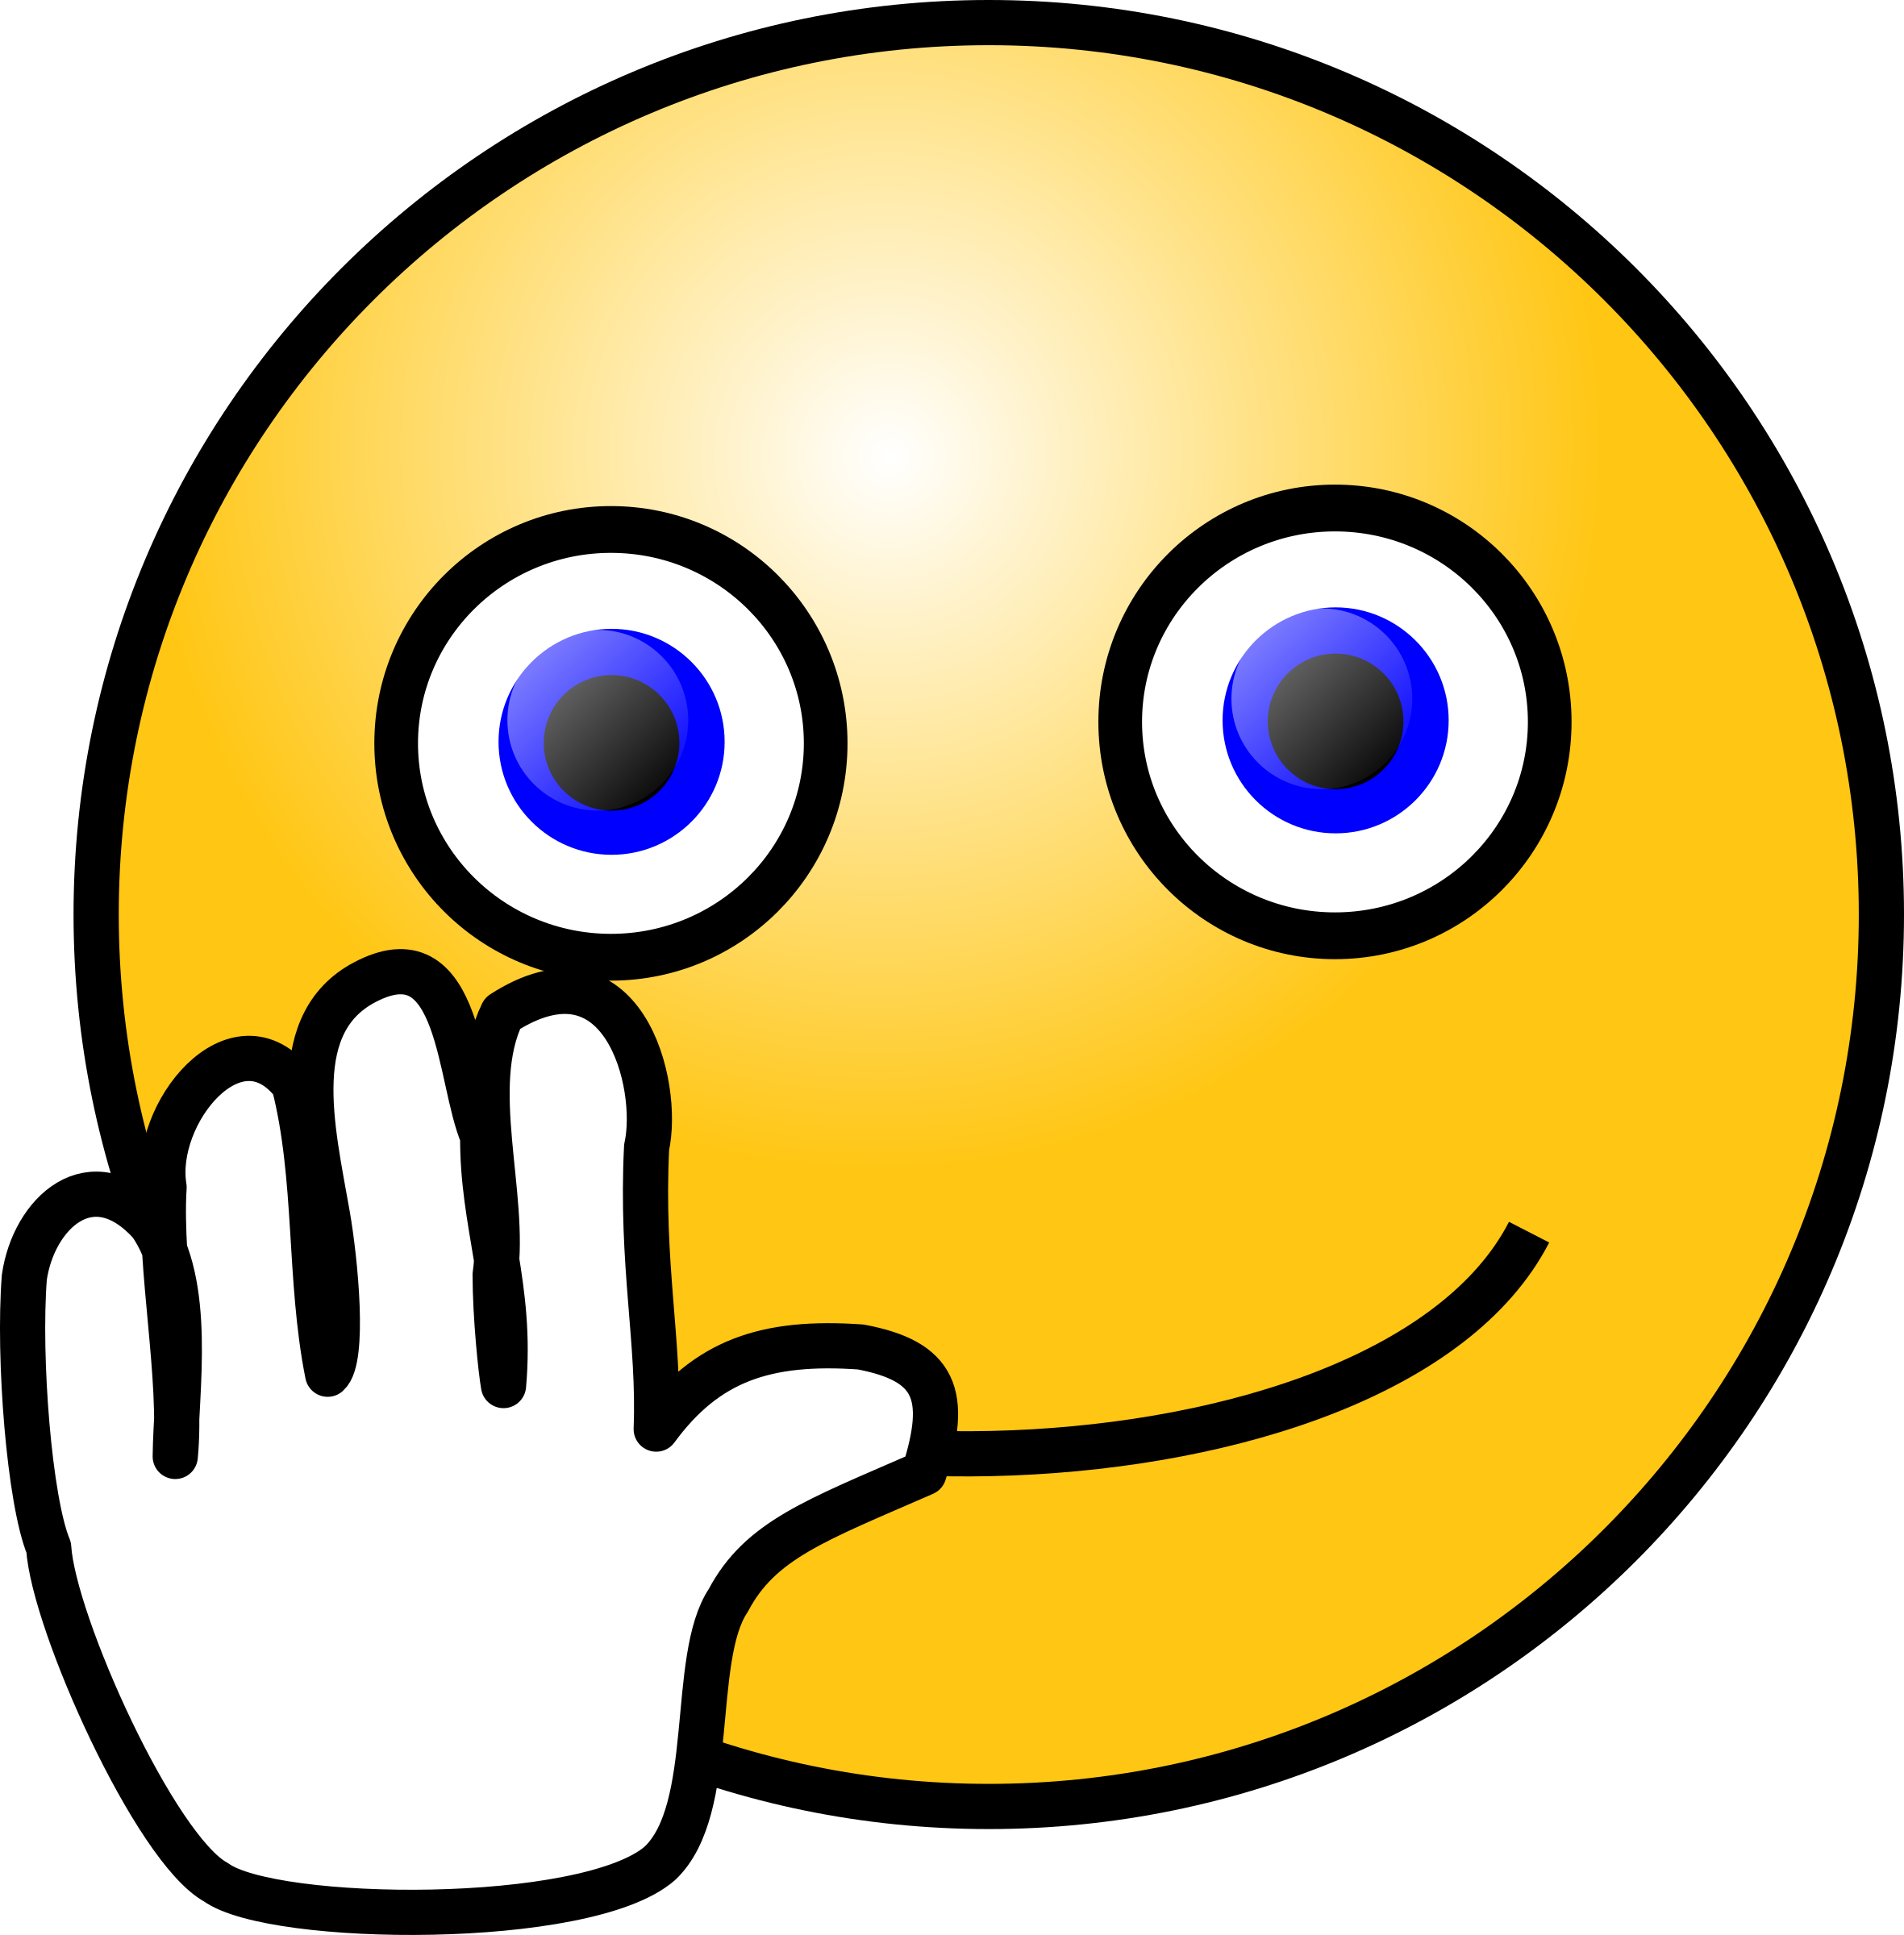 Clipart wave animated. Emoticons hand waving face